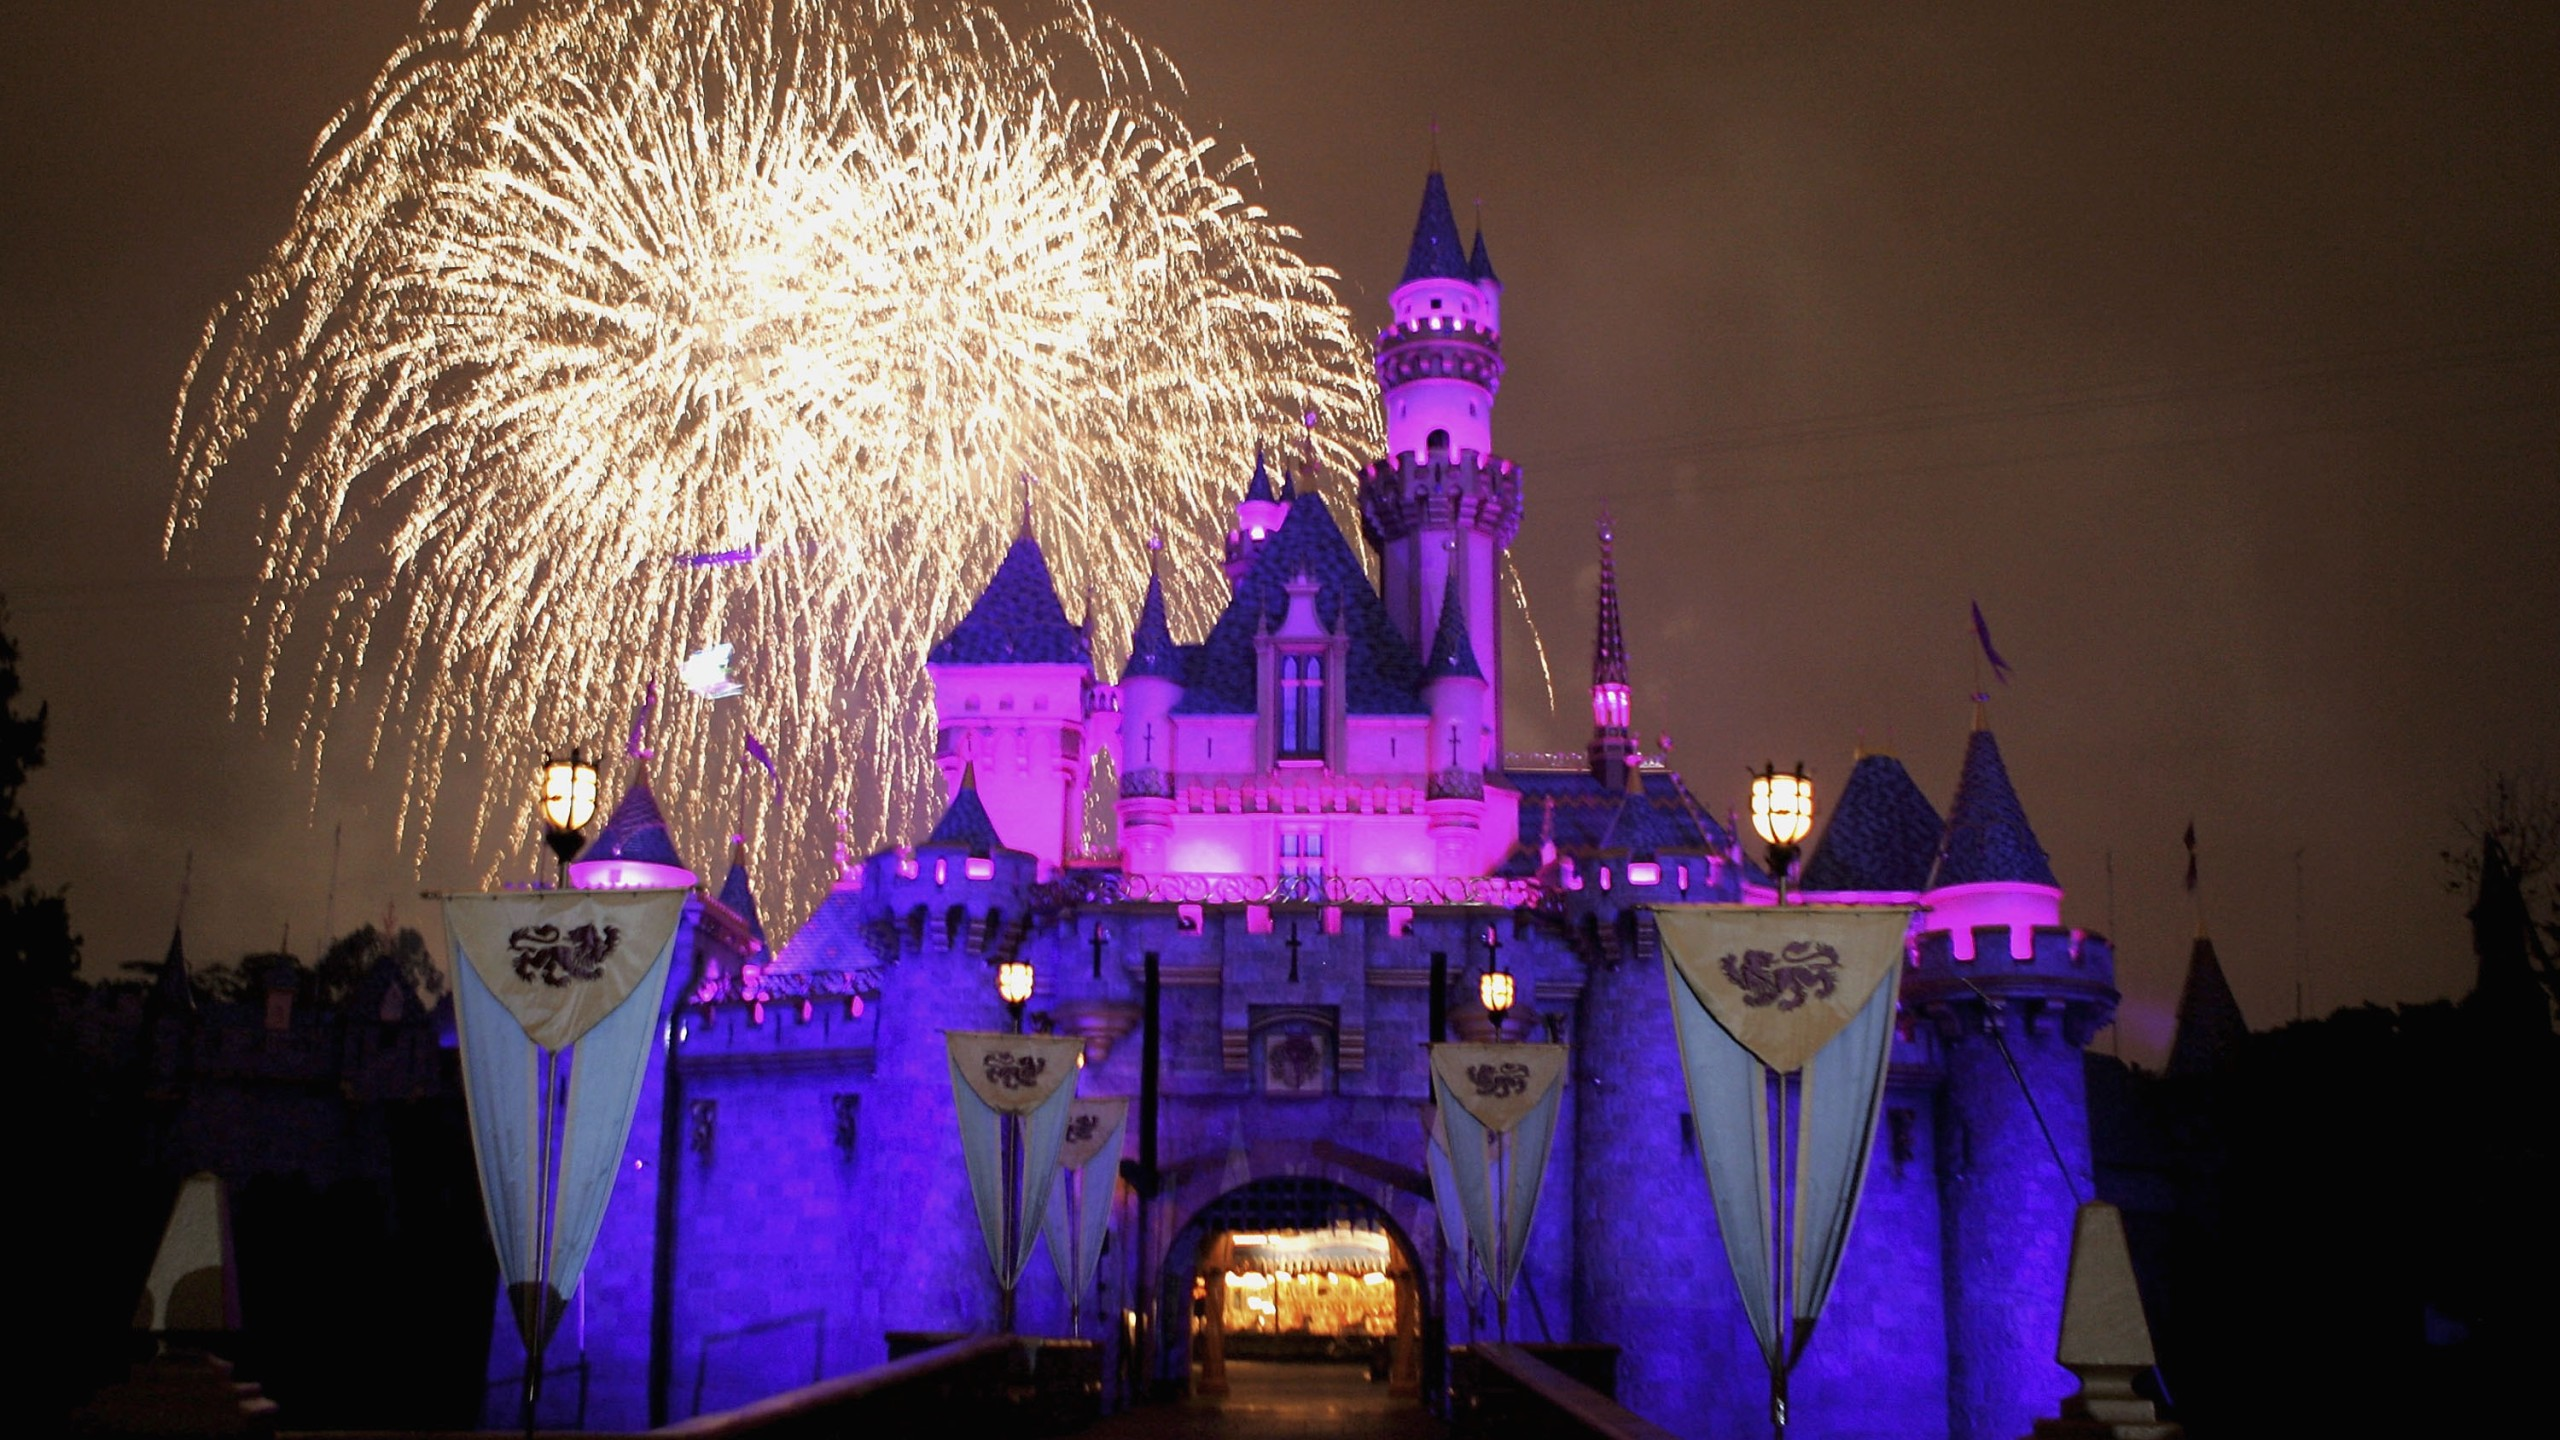 Fireworks explode over The Sleeping Beauty Castle during the Disneyland 50th Anniversary Celebration at Disneyland Park on May 4, 2005, in Anaheim, California. (Credit: Frazer Harrison/Getty Images)